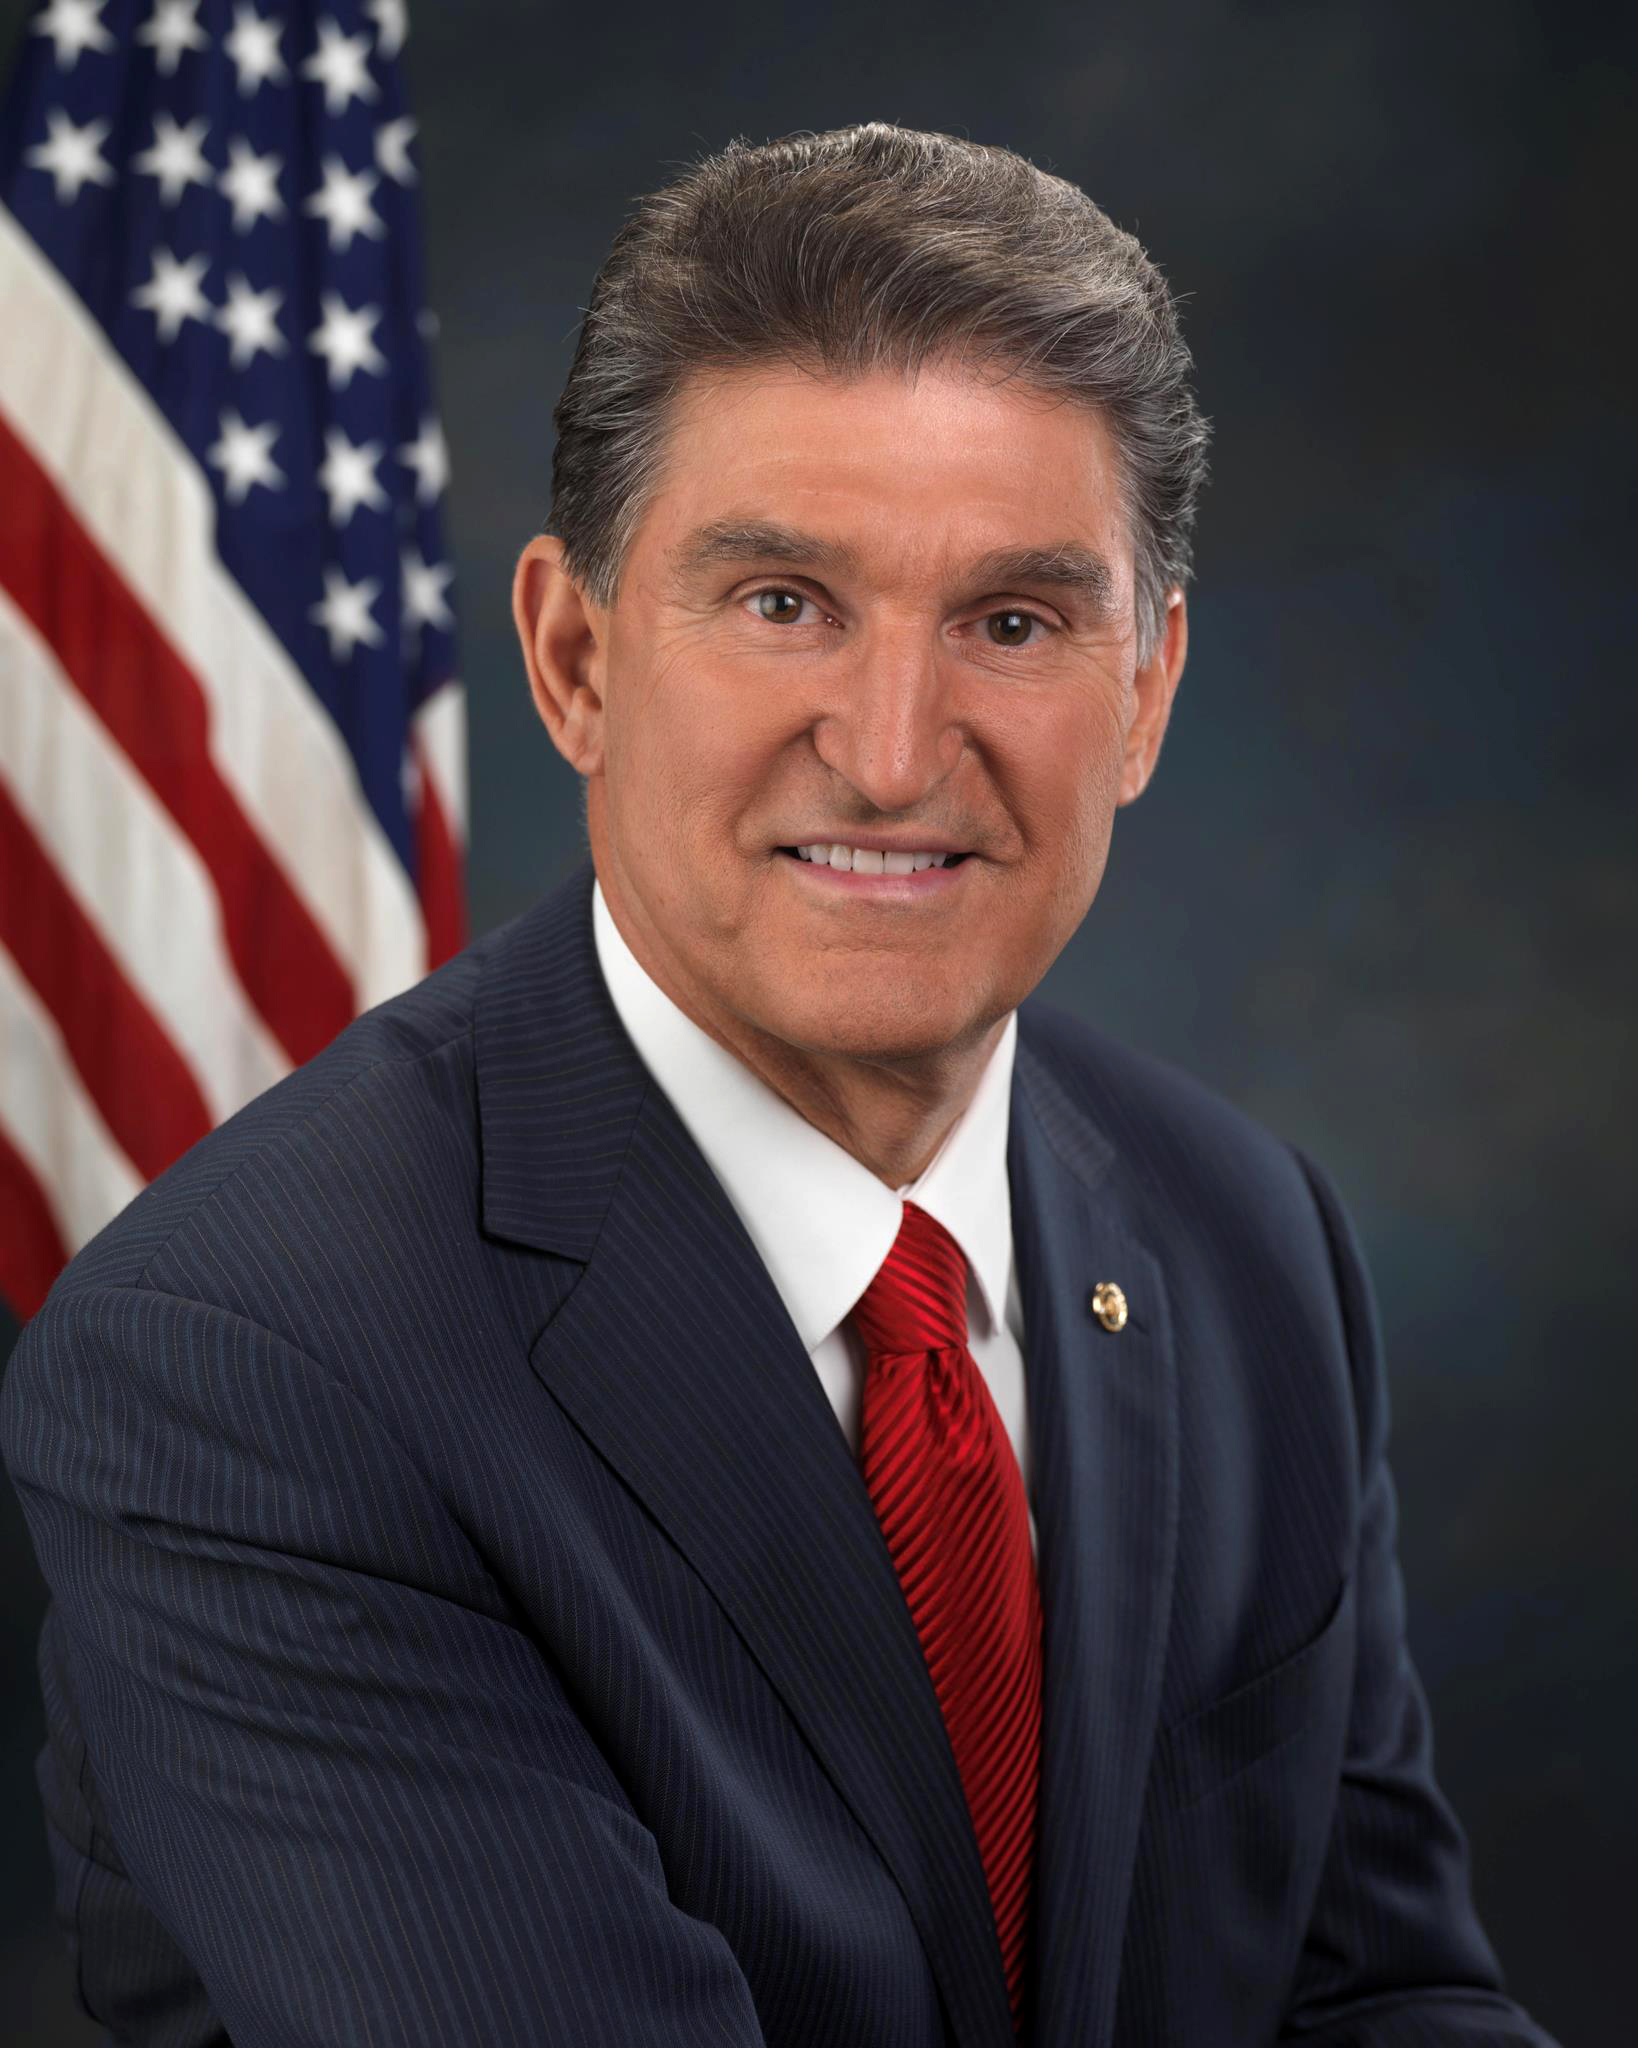 Joe_Manchin_official_portrait_112th_Congress